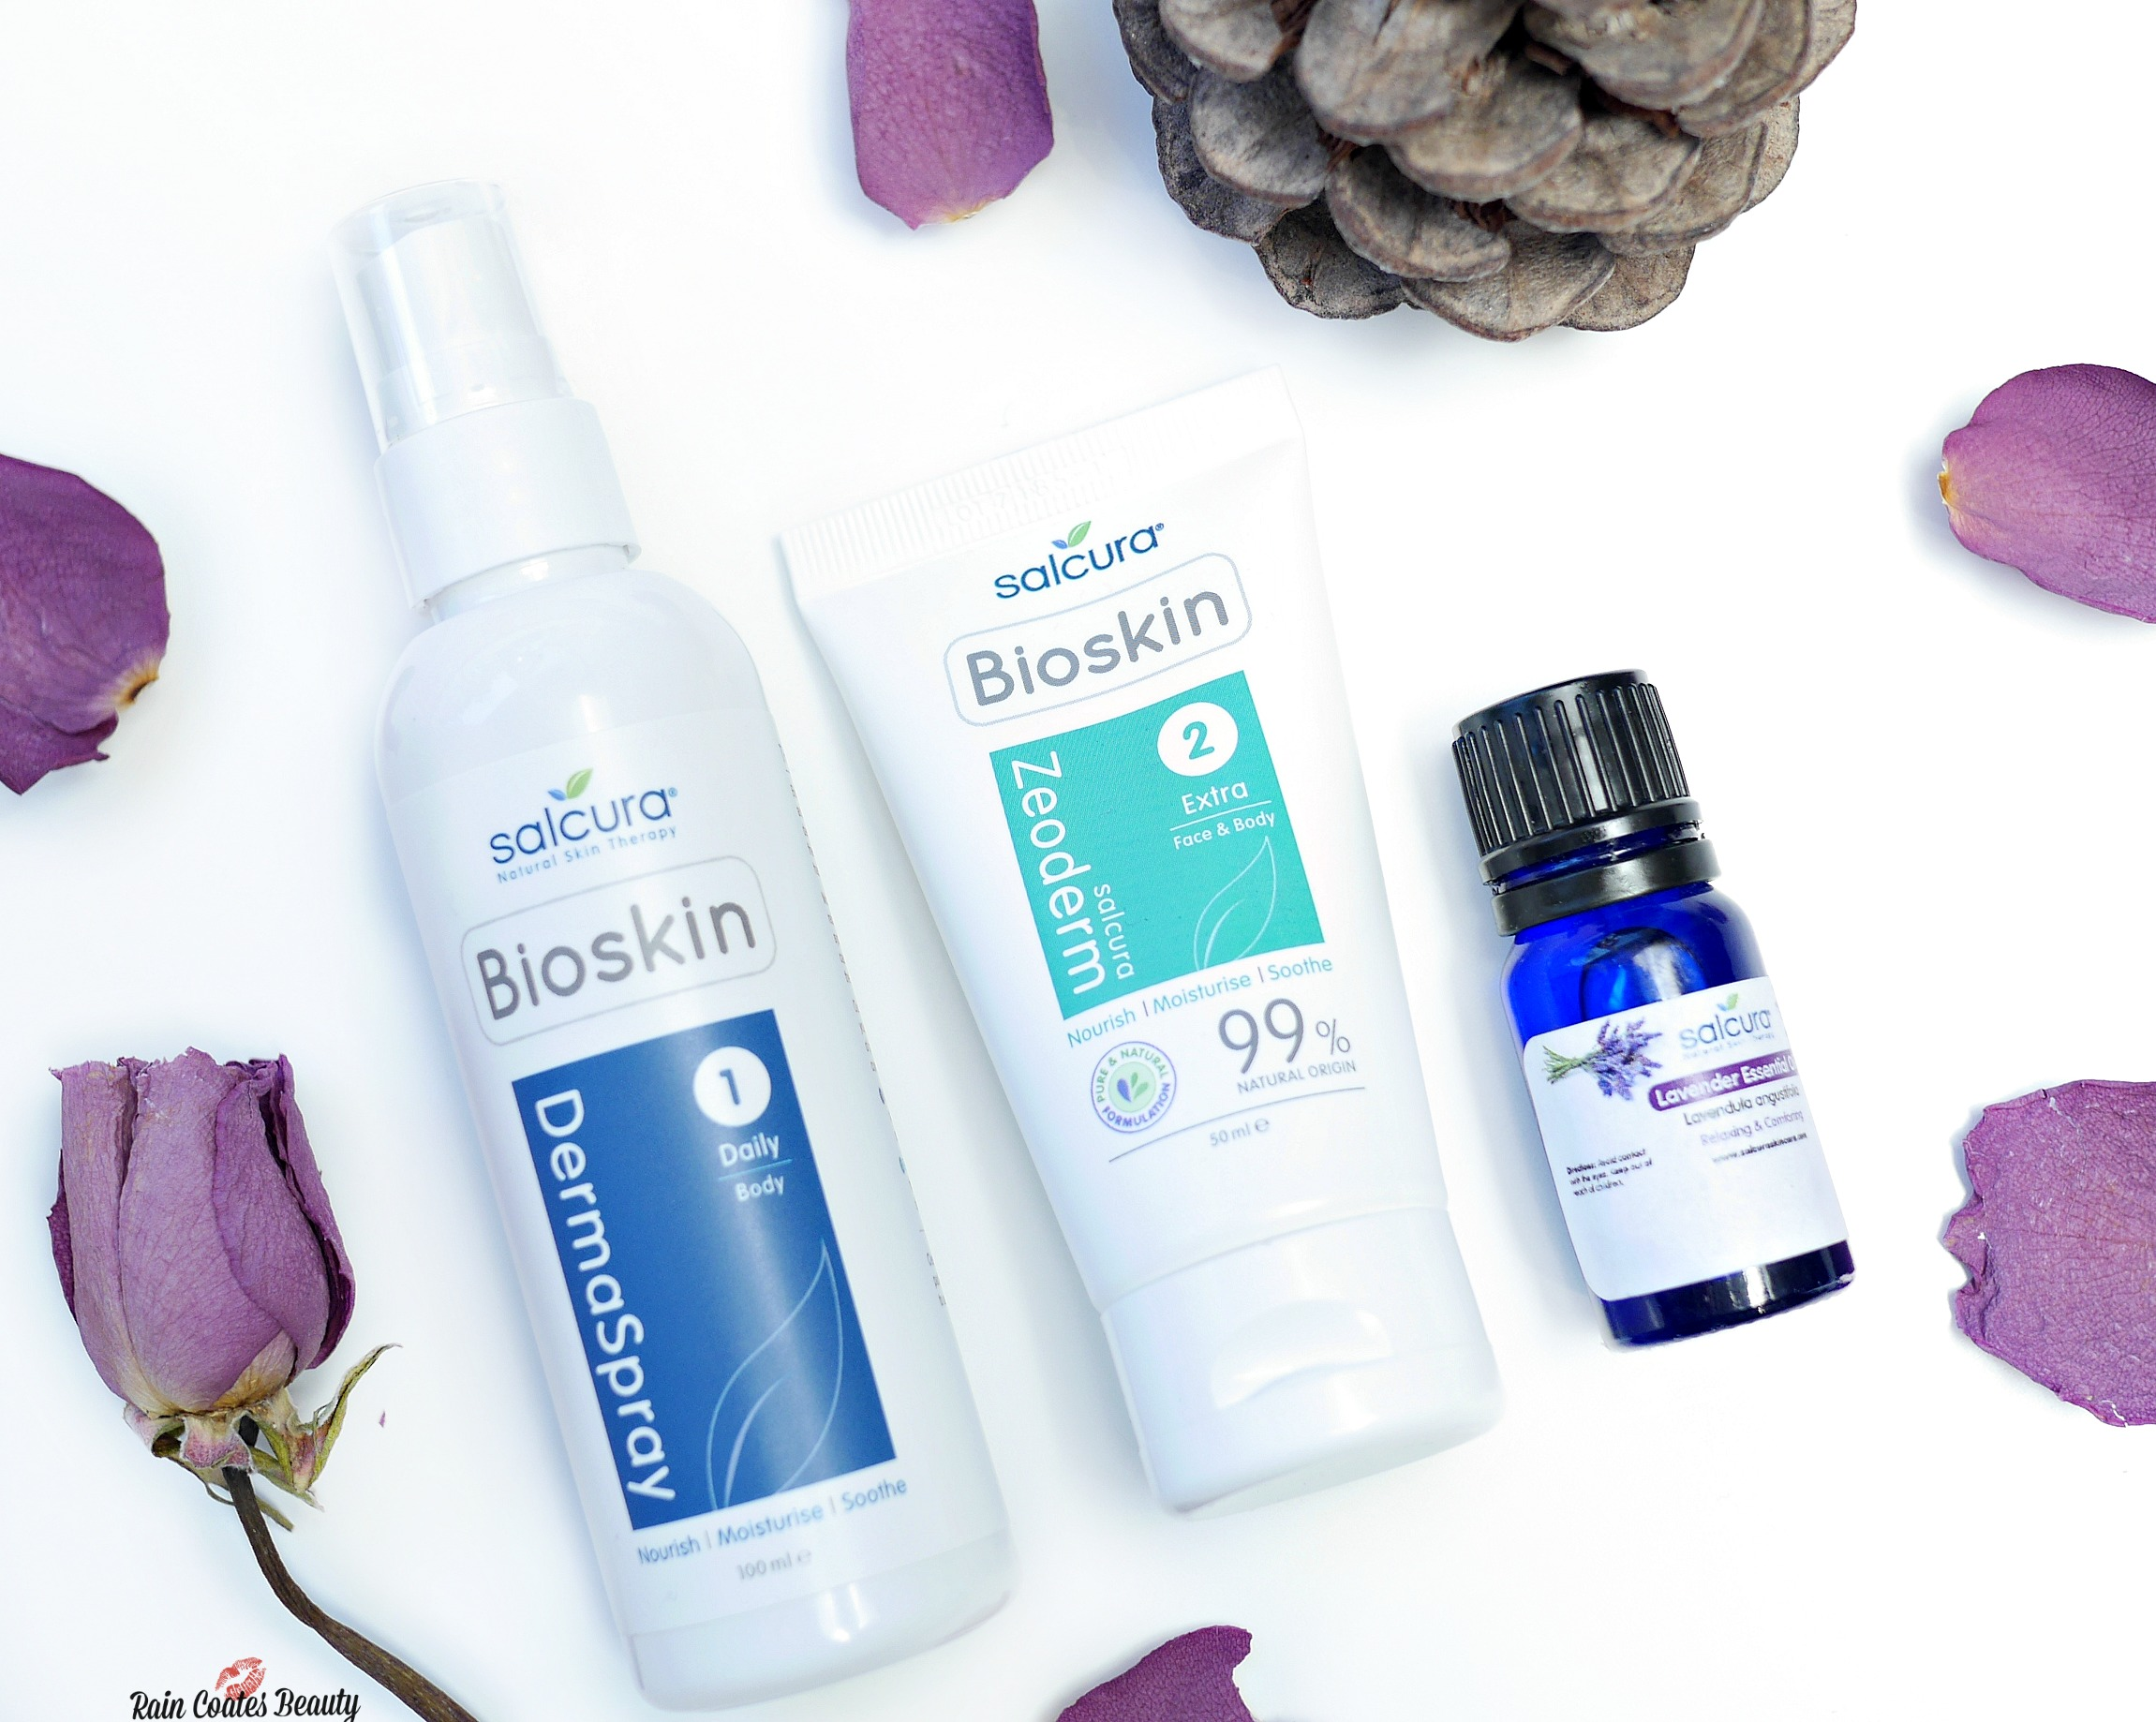 Eczema/Psoriasis Treatment – Salcura BioSkin Review